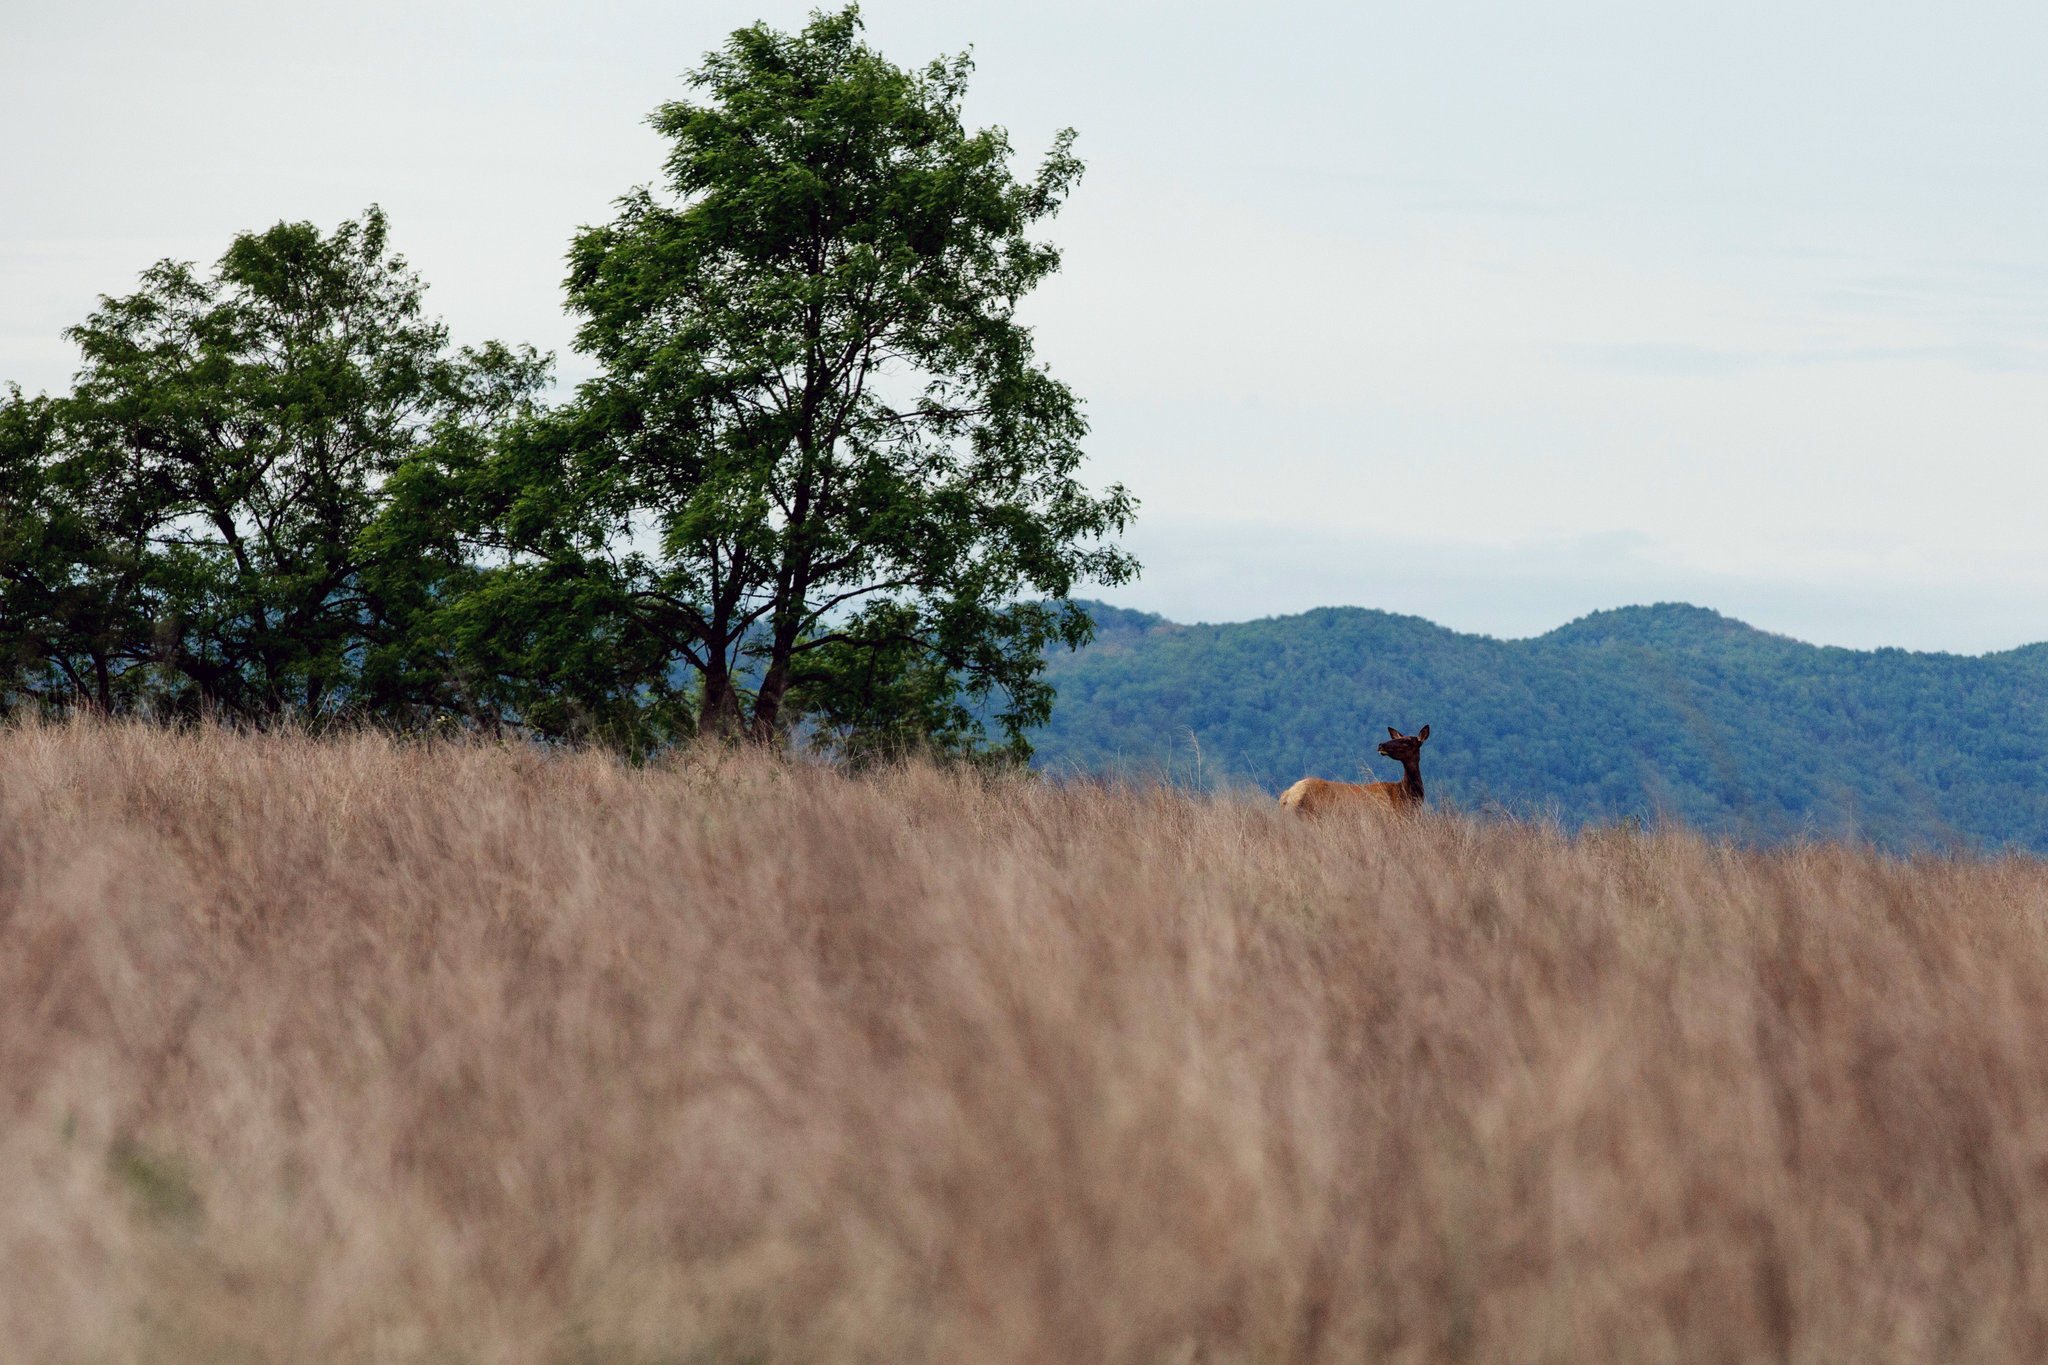 Elk Return to Kentucky, Bringing Economic Life